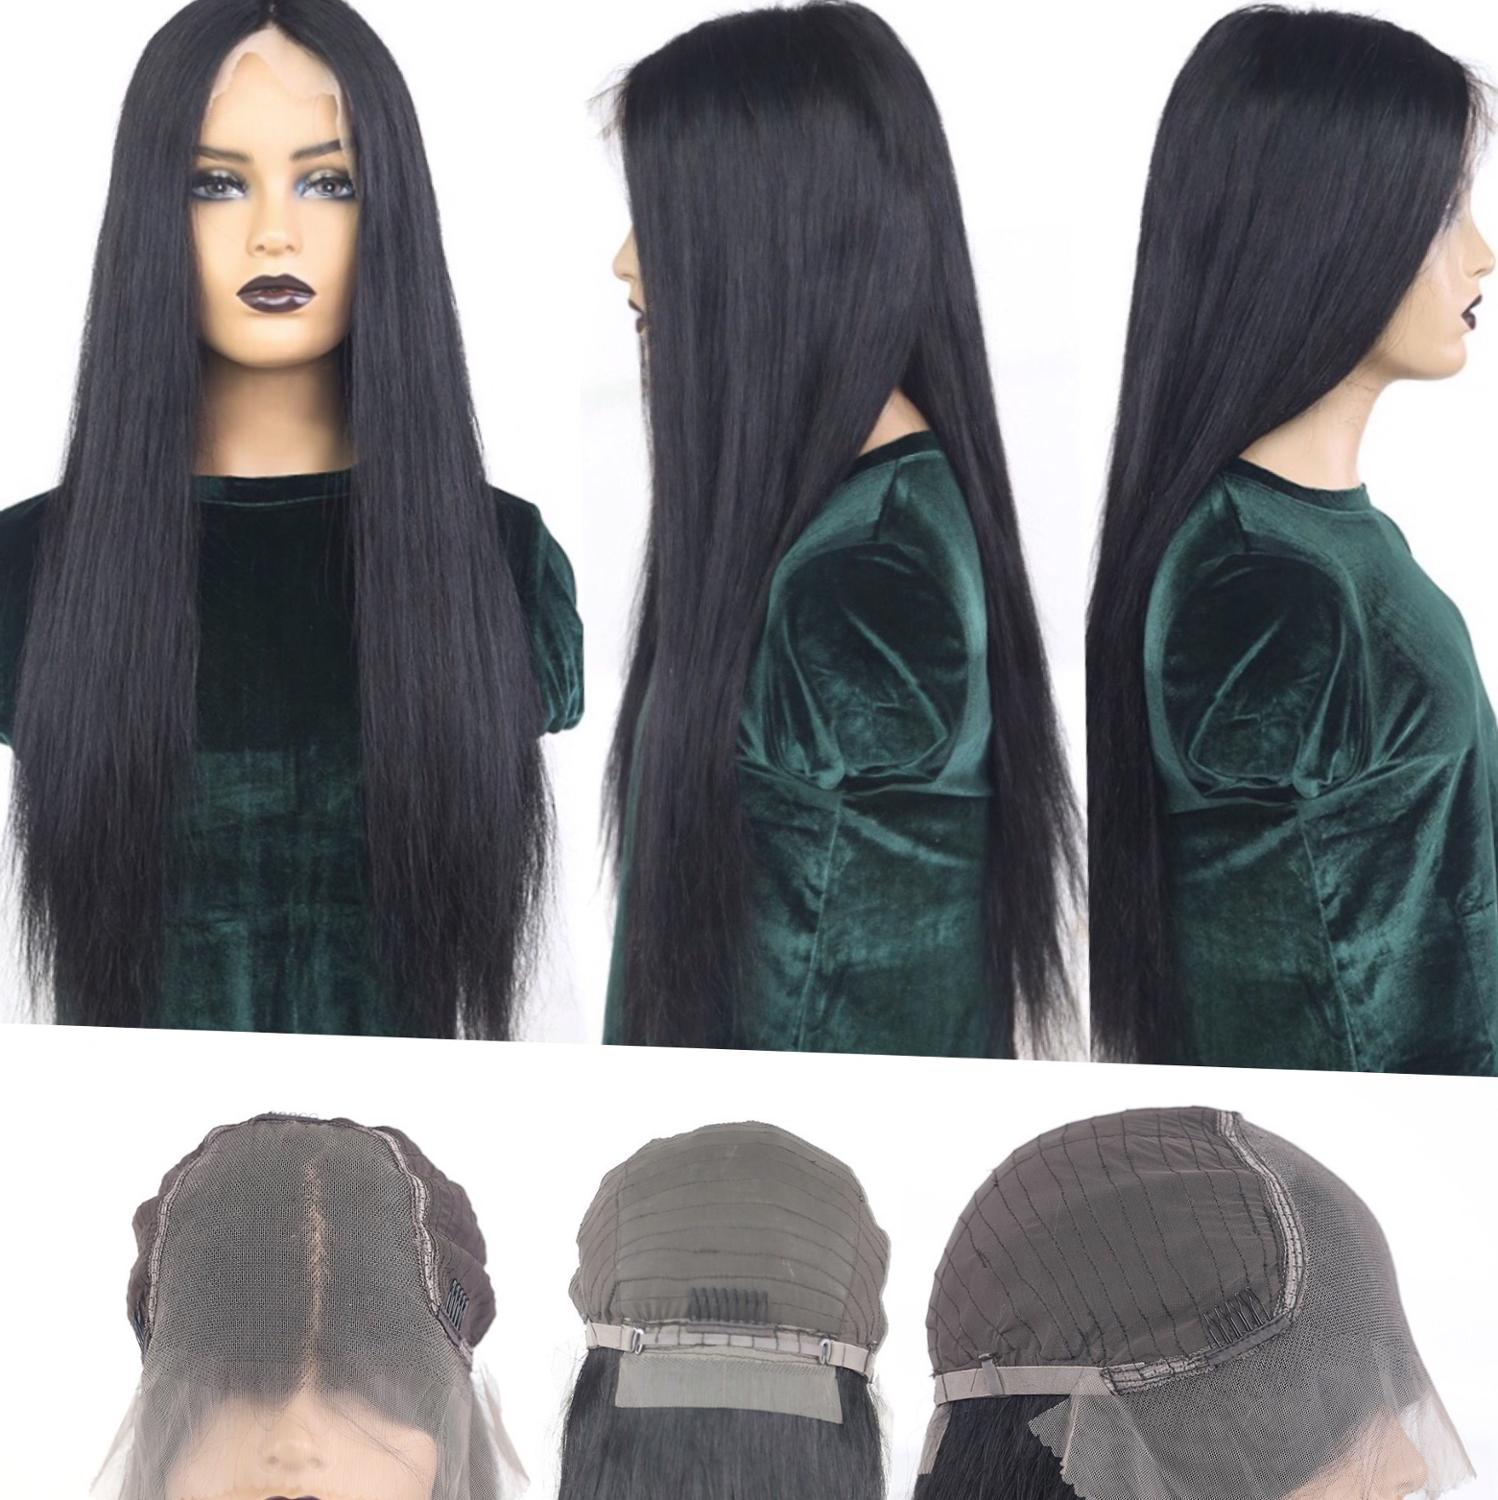 【IJOY】13x6 Lace Front Wig 14''-30'' Straight Human Hair Wigs Lace Front Brazilian Wig Natural Hair 150% Remy Pre-Plucked Winter